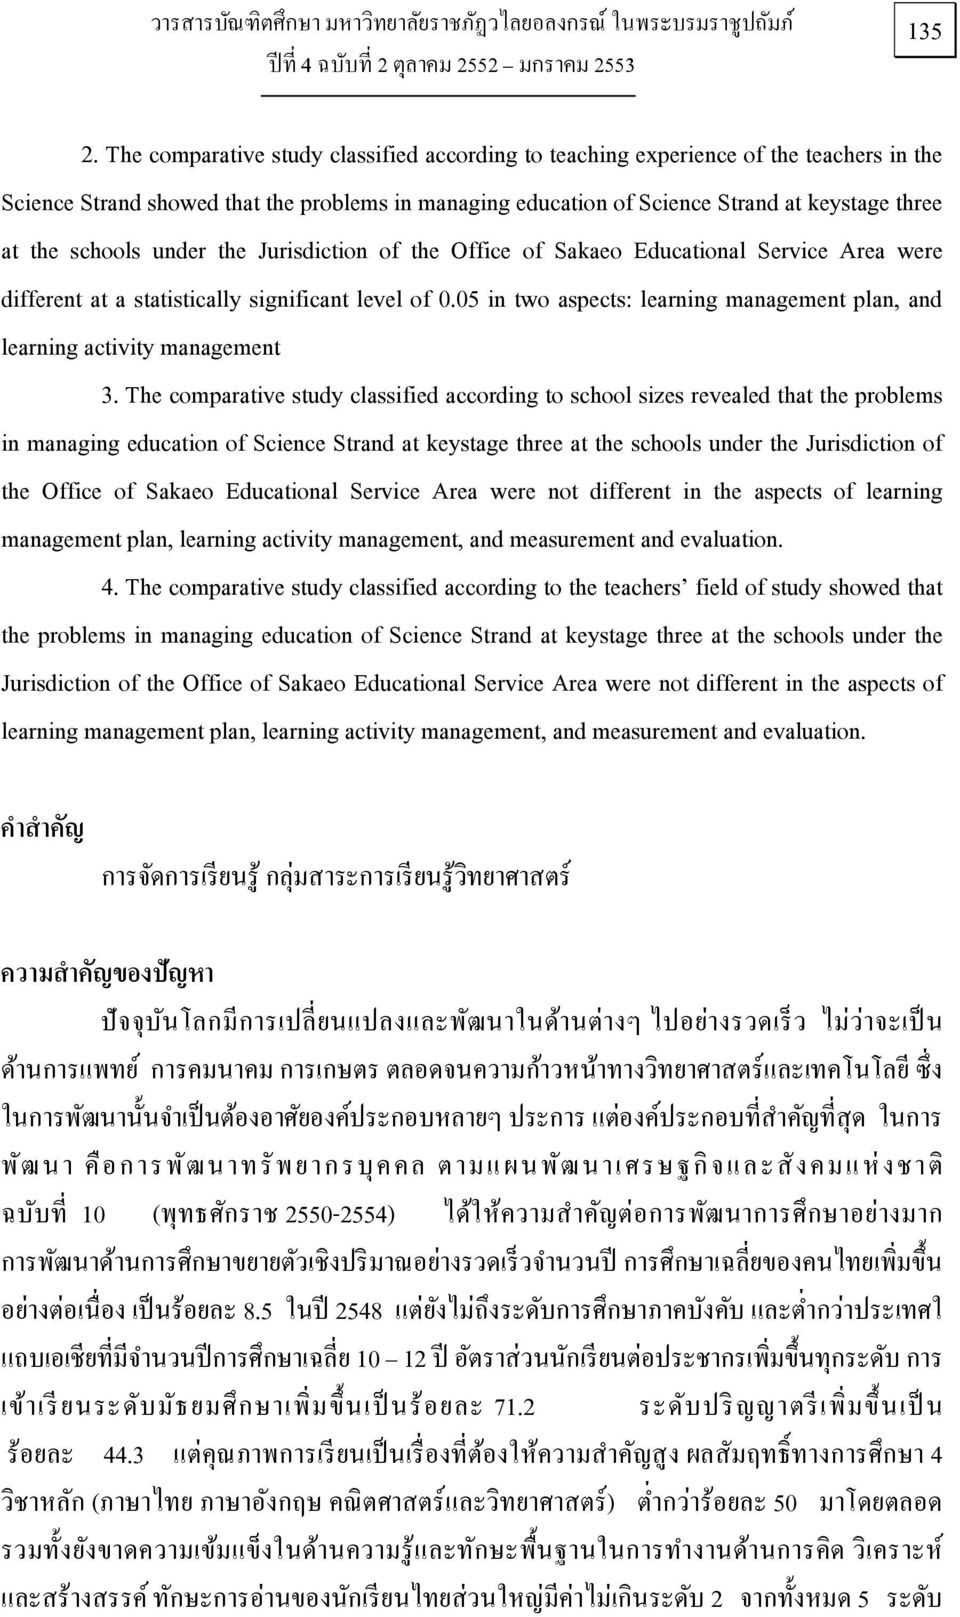 schools under the Jurisdiction of the Office of Sakaeo Educational Service Area were different at a statistically significant level of 0.